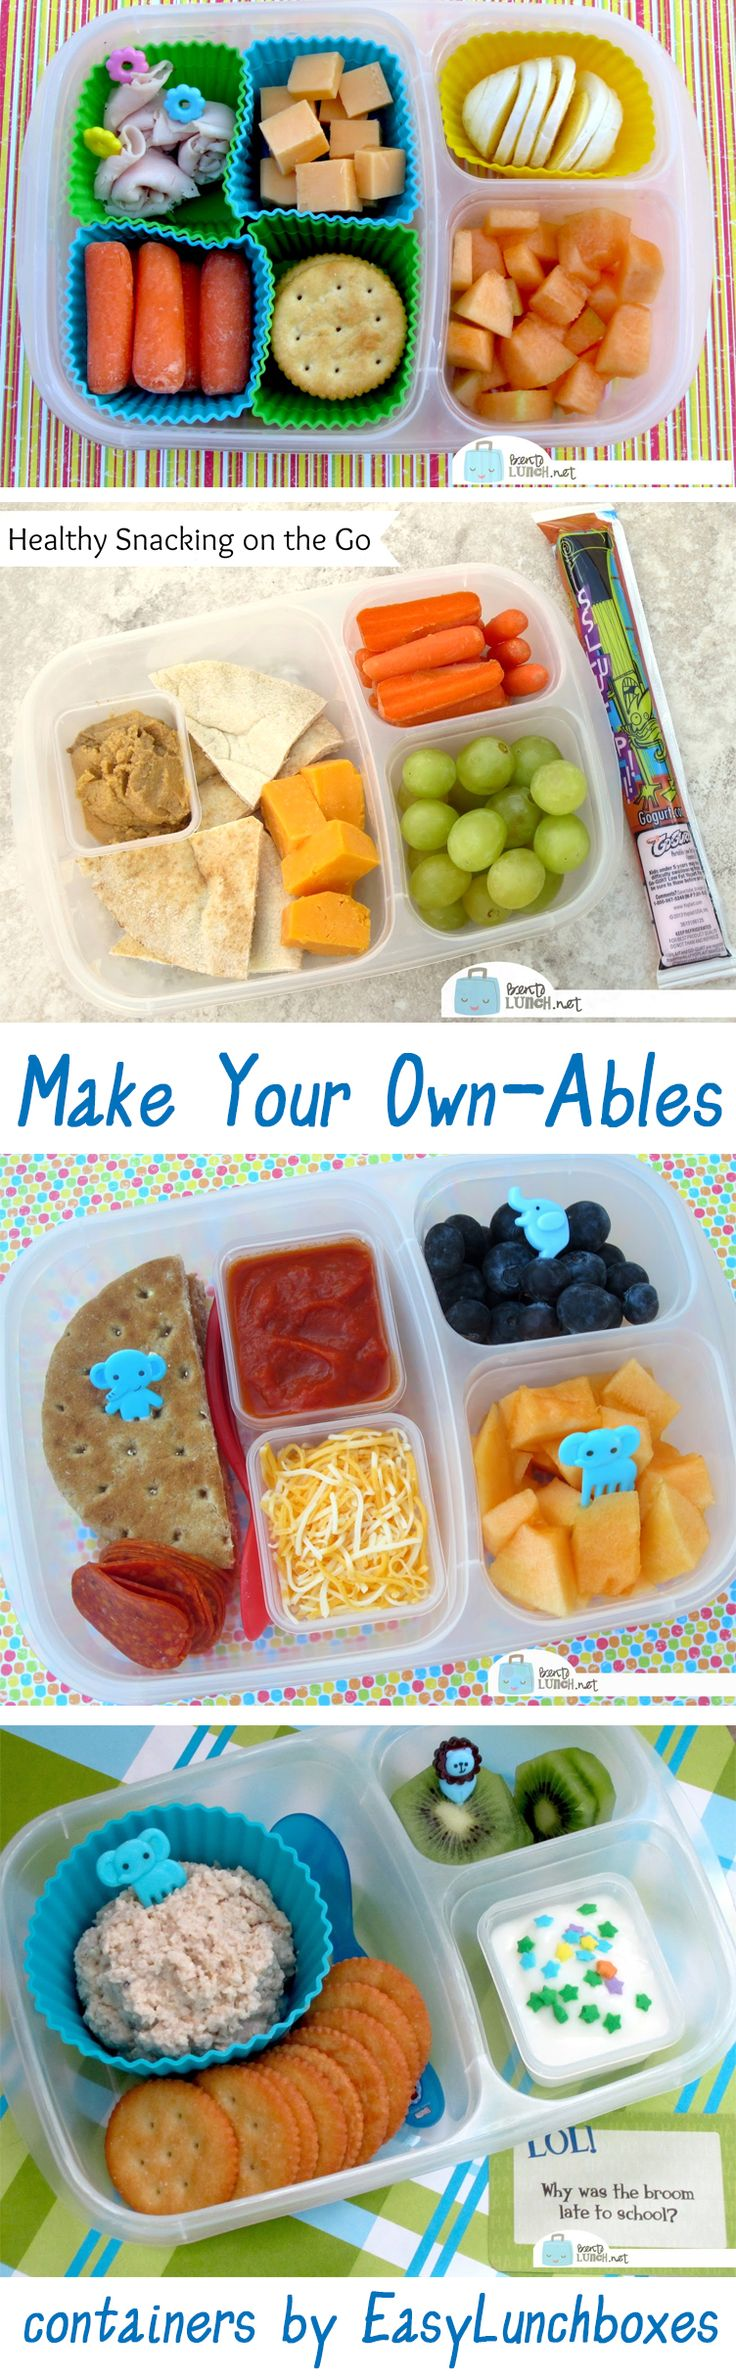 It's easy (and healthier) to make your own version of the -able lunch! Packed in @easylunchboxes